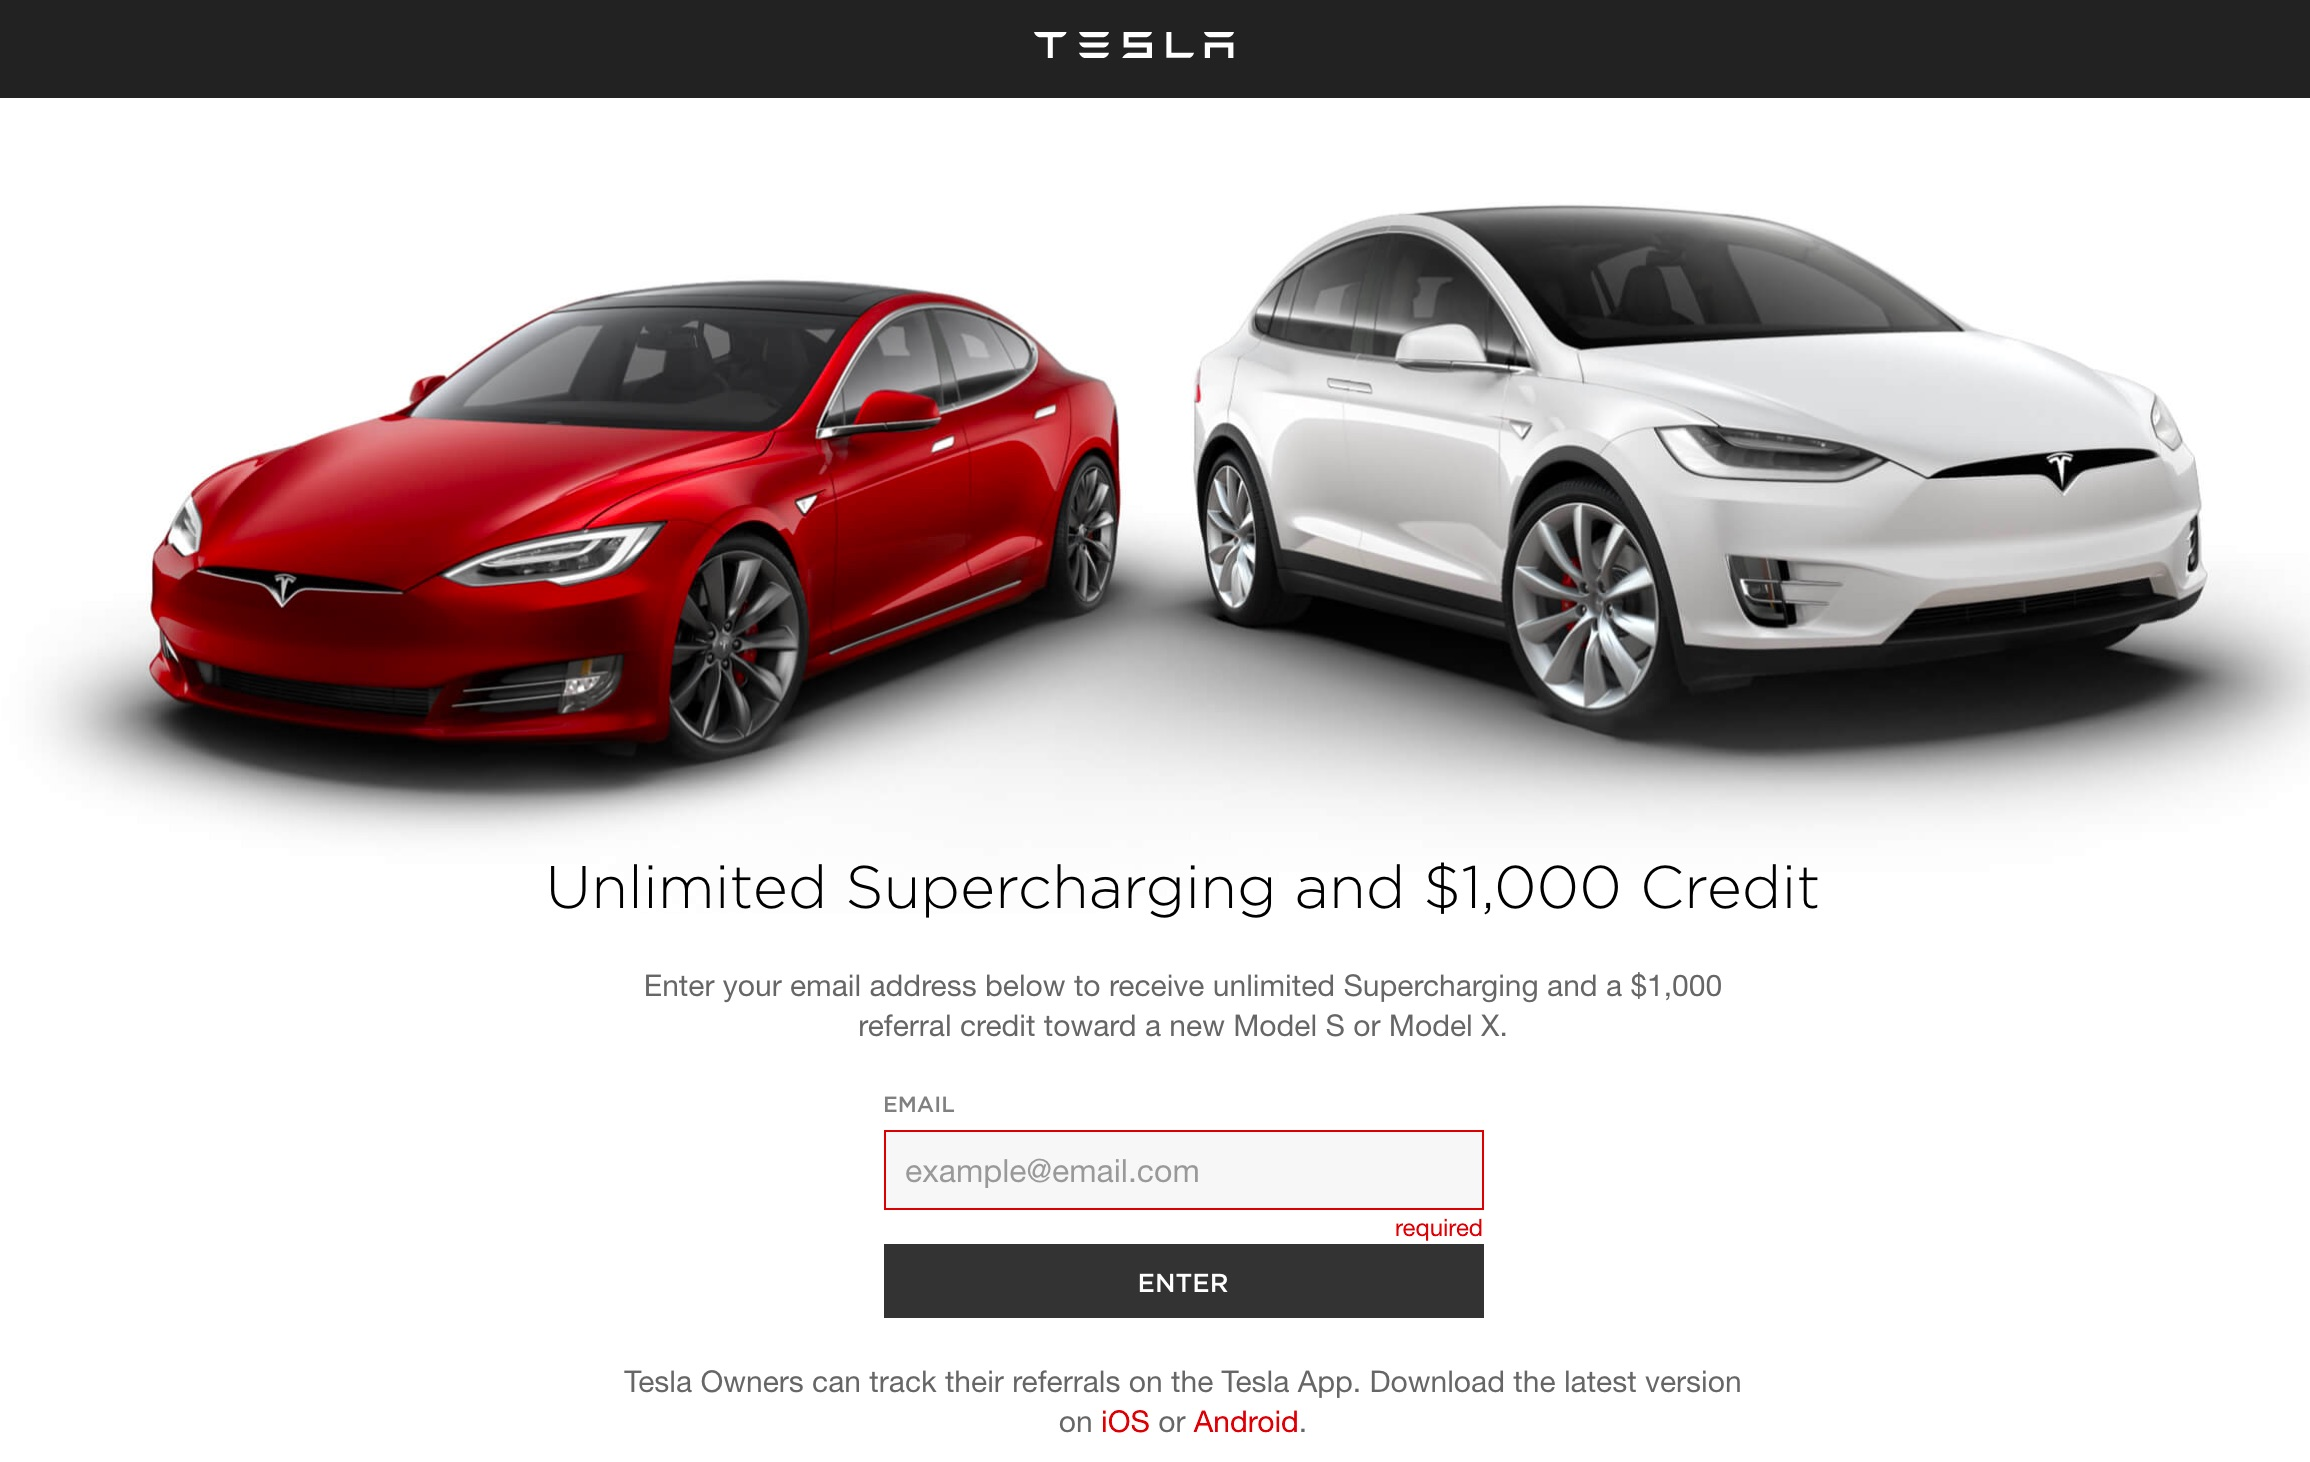 tesla-referral-program-unlimited-supercharging-splash